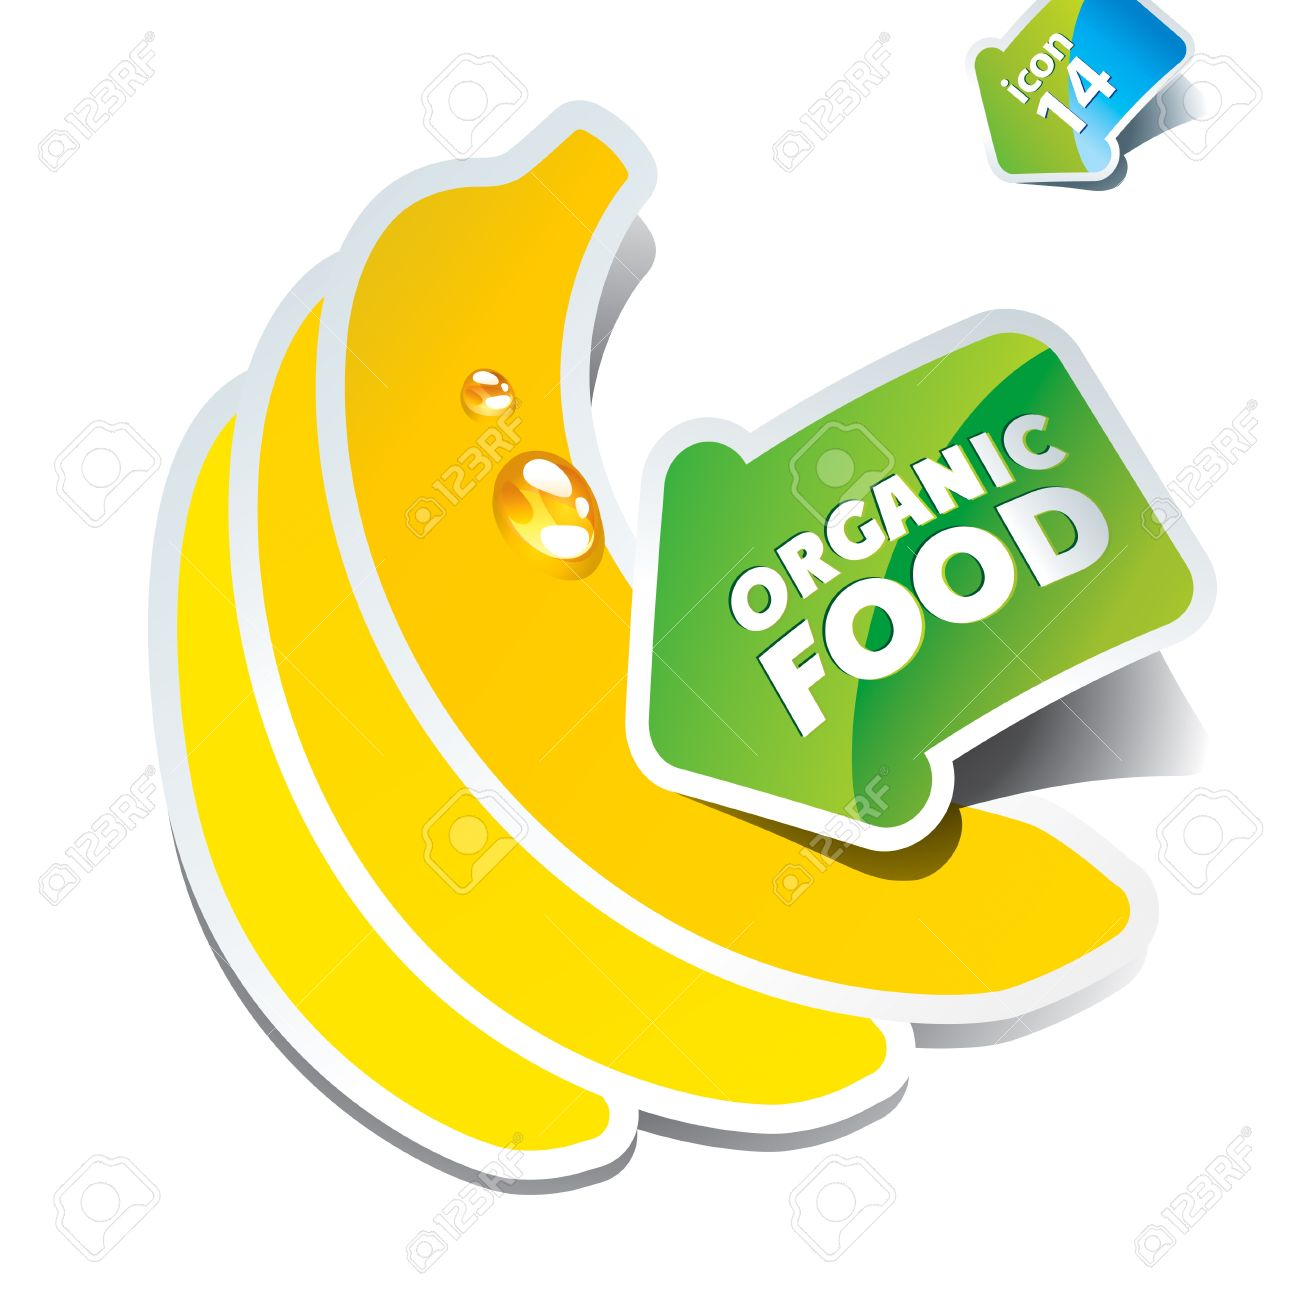 Icon Bananas With An Arrow By Organic Food. Vector Illustration.